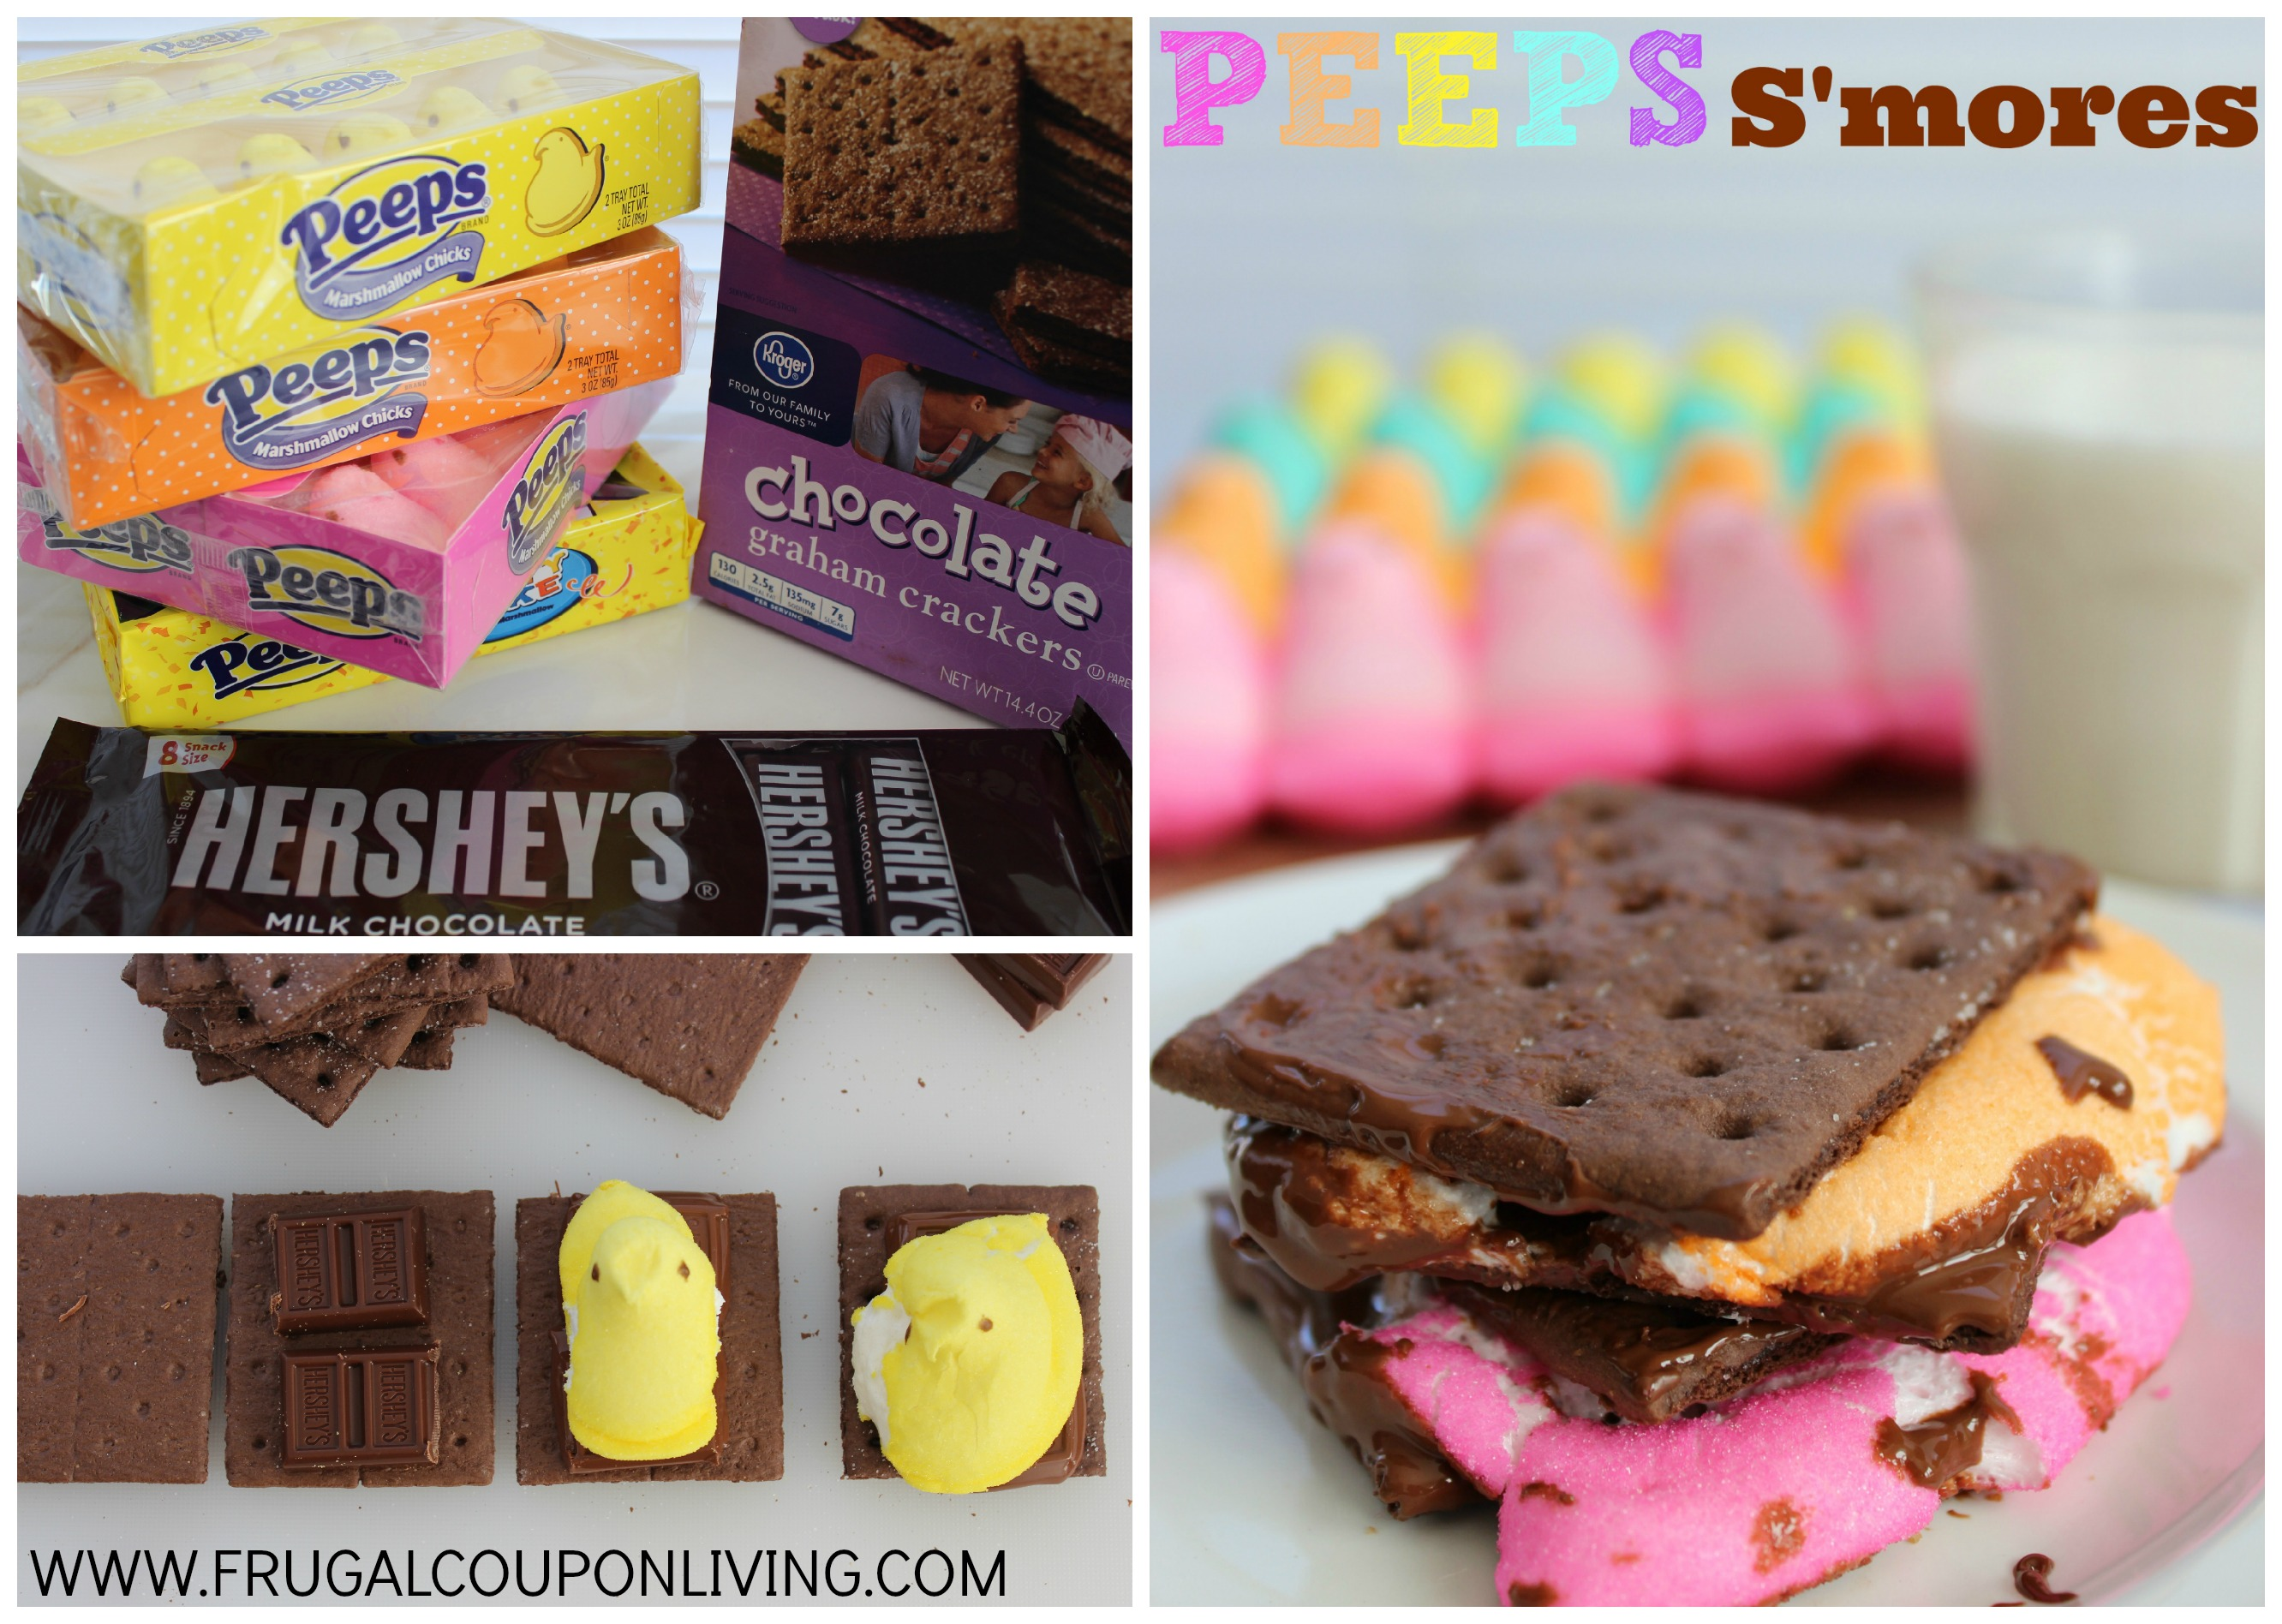 Peeps-Smores-Collage-Frugal-Coupn-Living